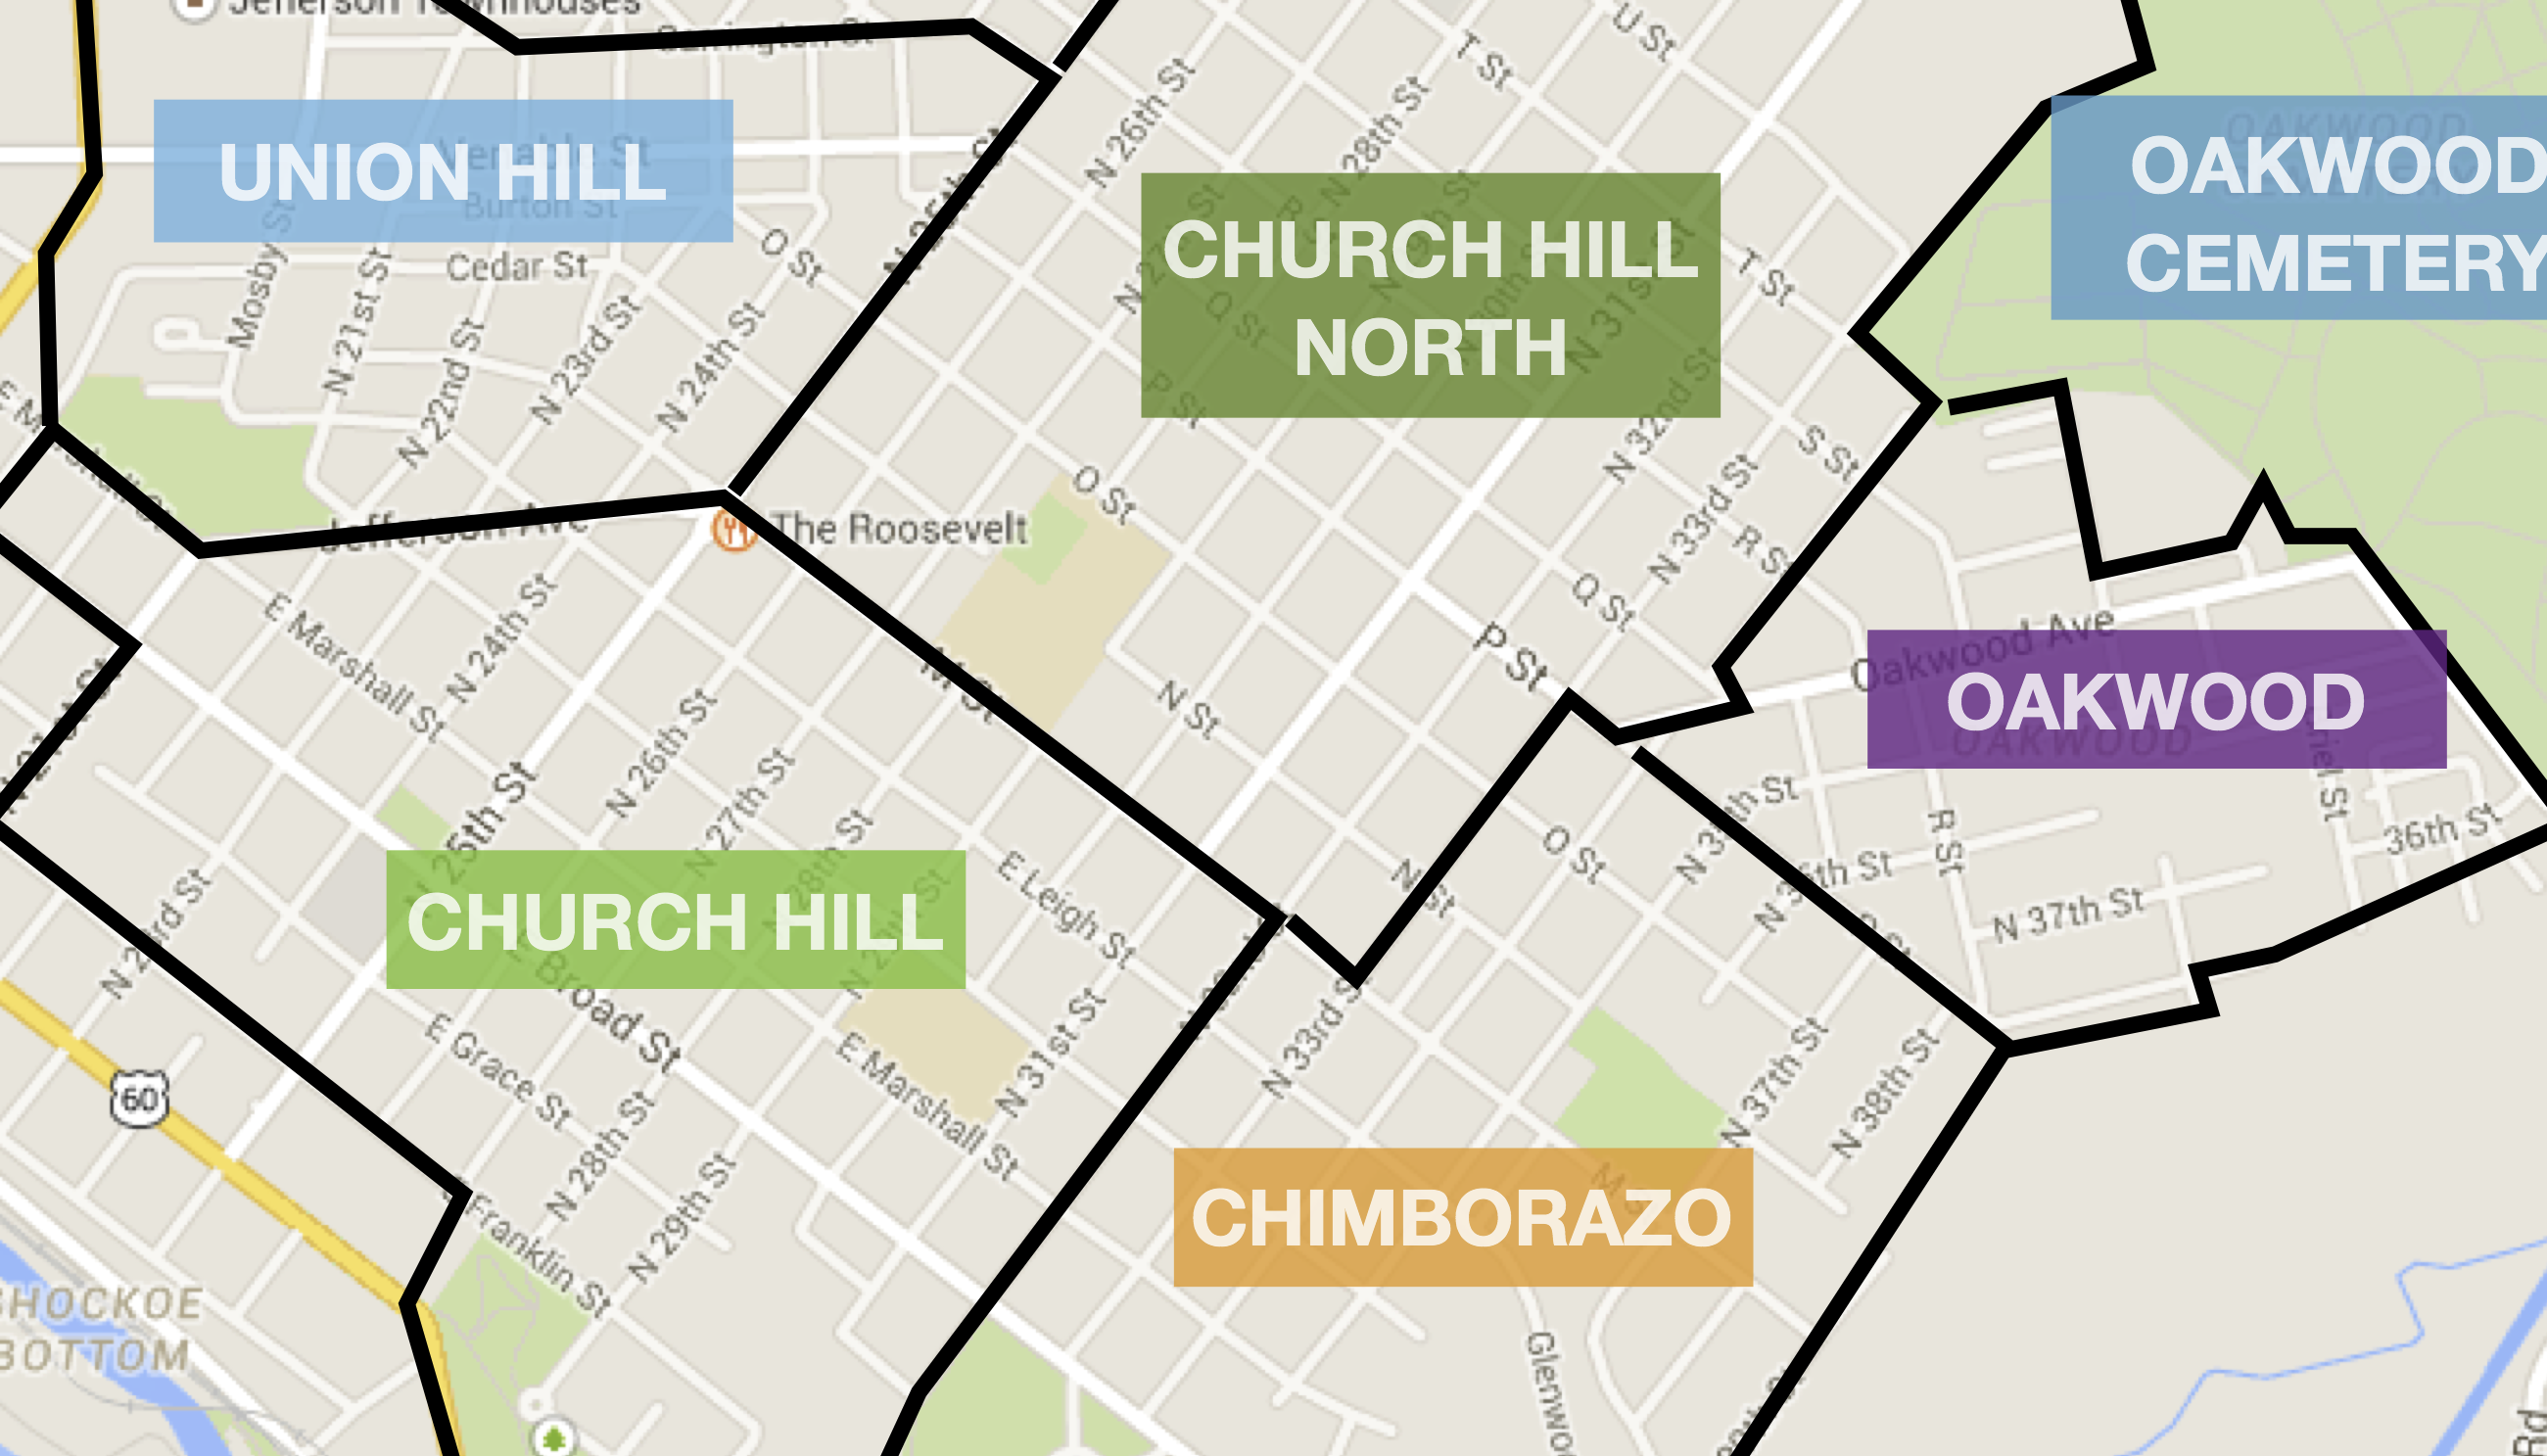 map of richmond's east end neighborhoods  church hill people's  - map of richmond's east end neighborhoods  church hill people's news richmond virginia